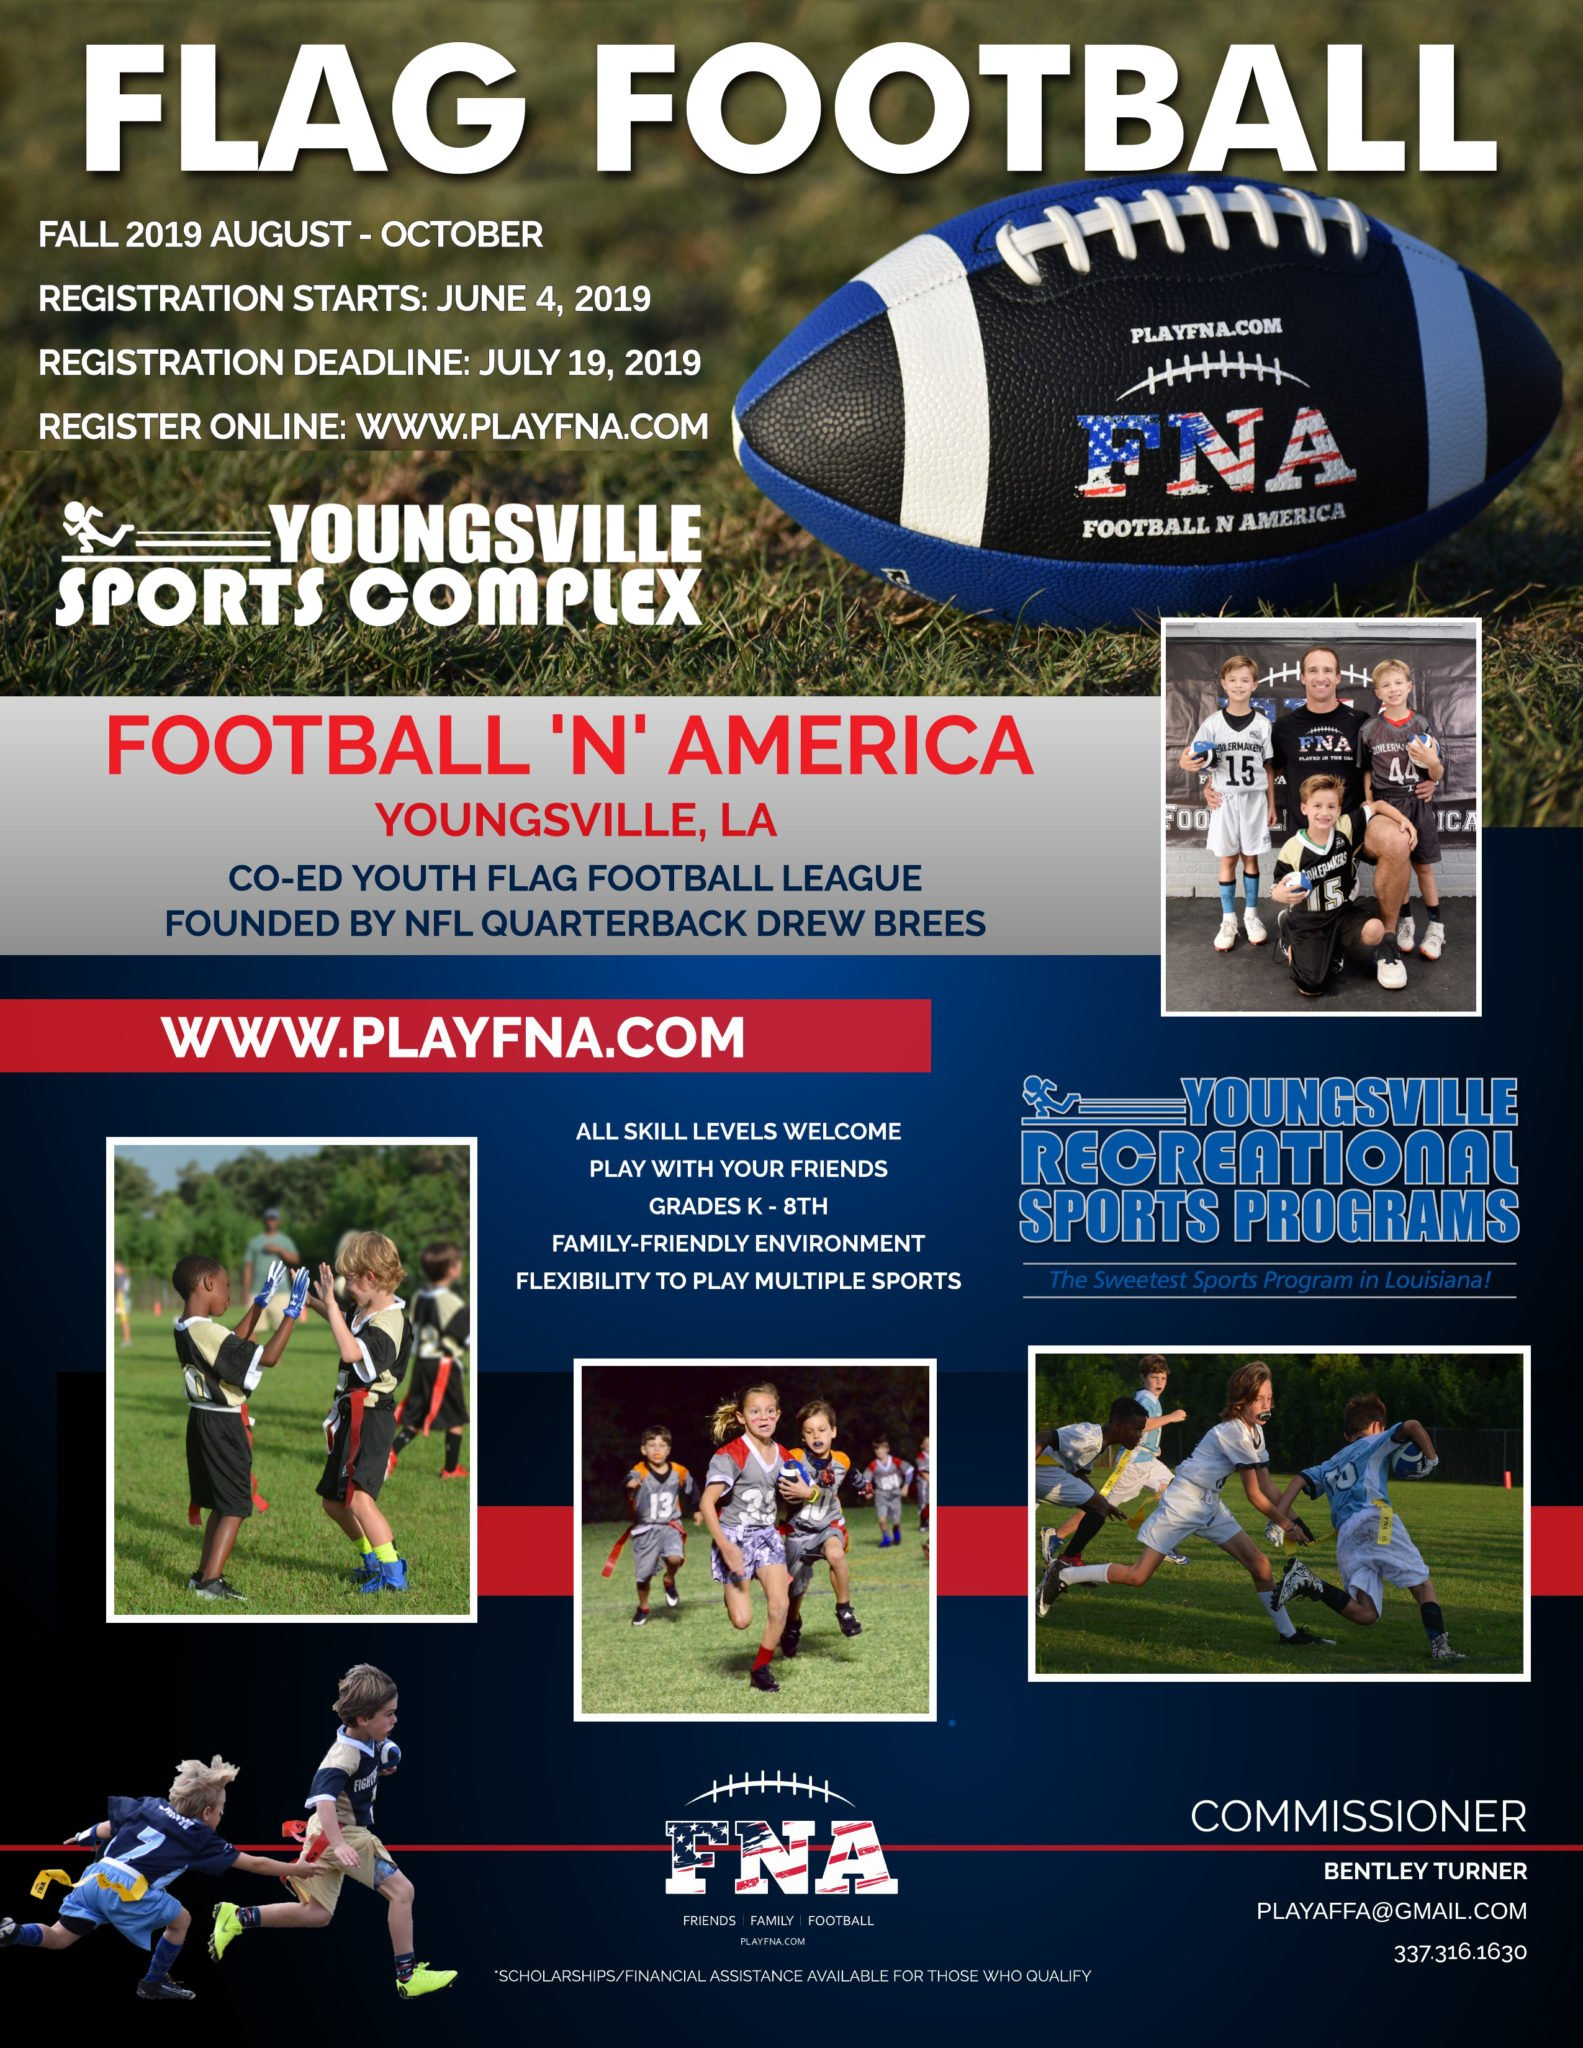 Youngsville Sports Complex – Louisiana's Premier Sports and ... on blaine national sports center map, providence park field map, blaine sports complex field map, national sports complex field map,